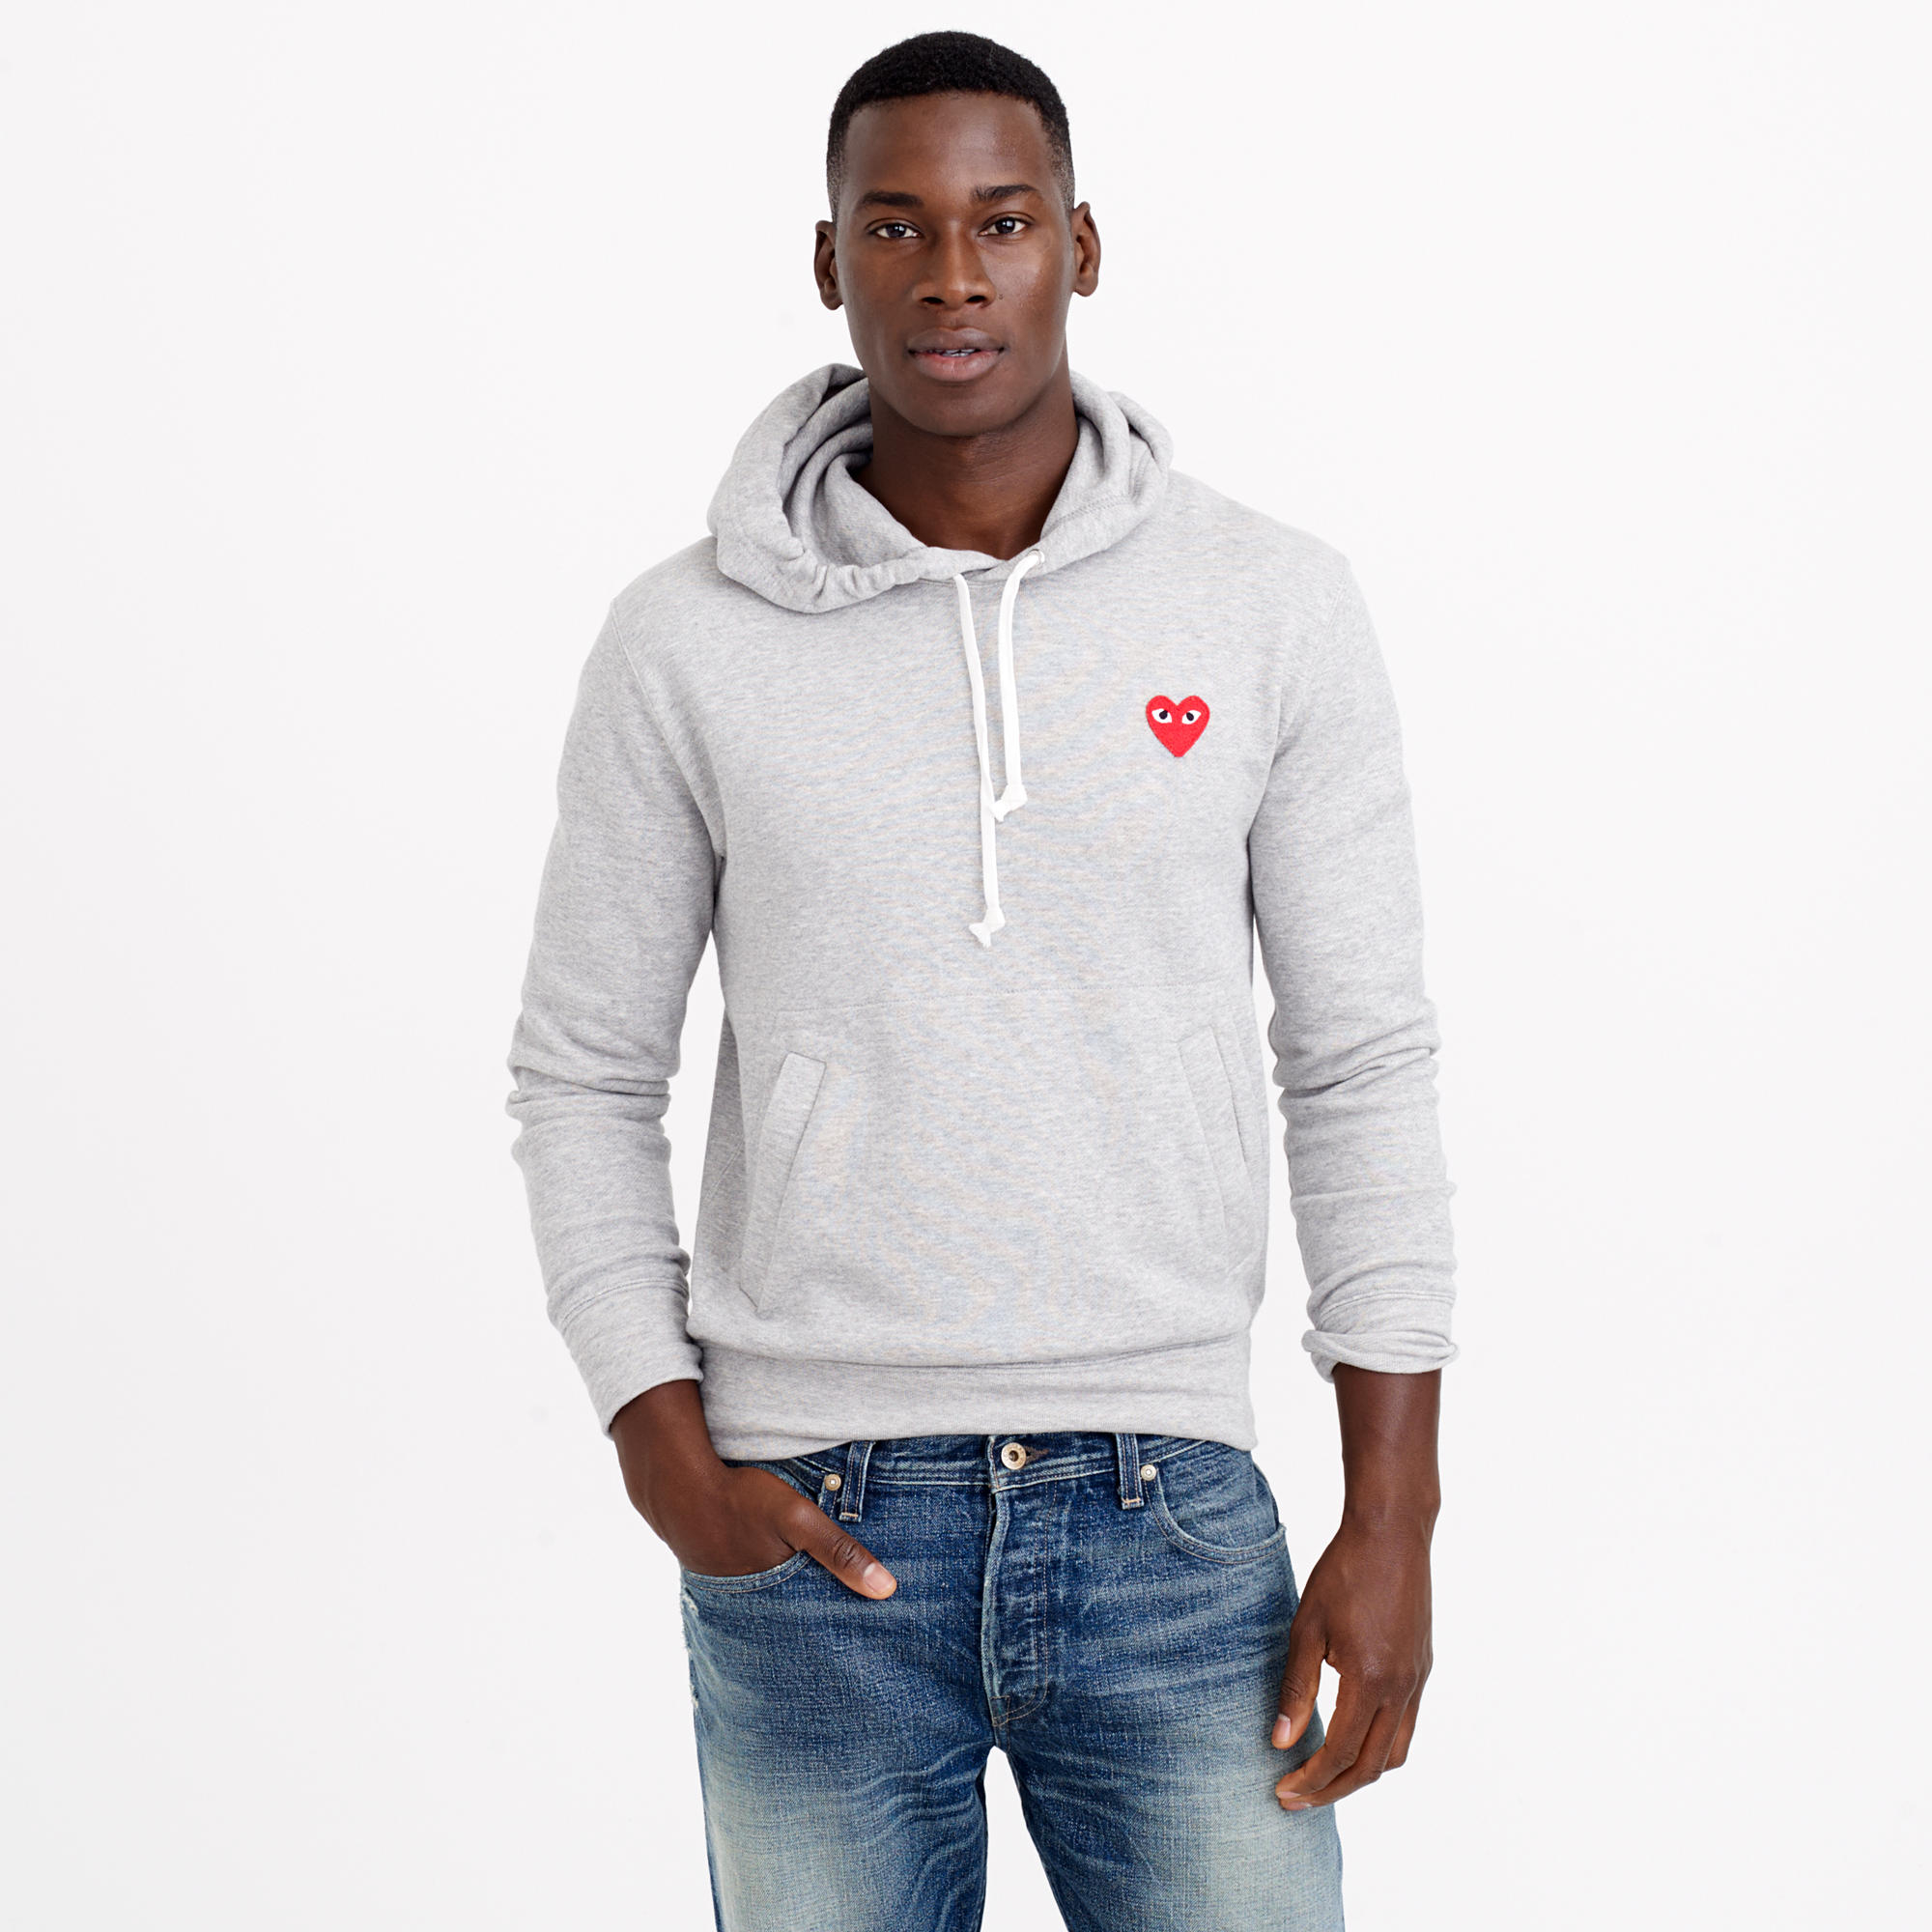 play comme des gar ons hoodie in gray for men lyst. Black Bedroom Furniture Sets. Home Design Ideas